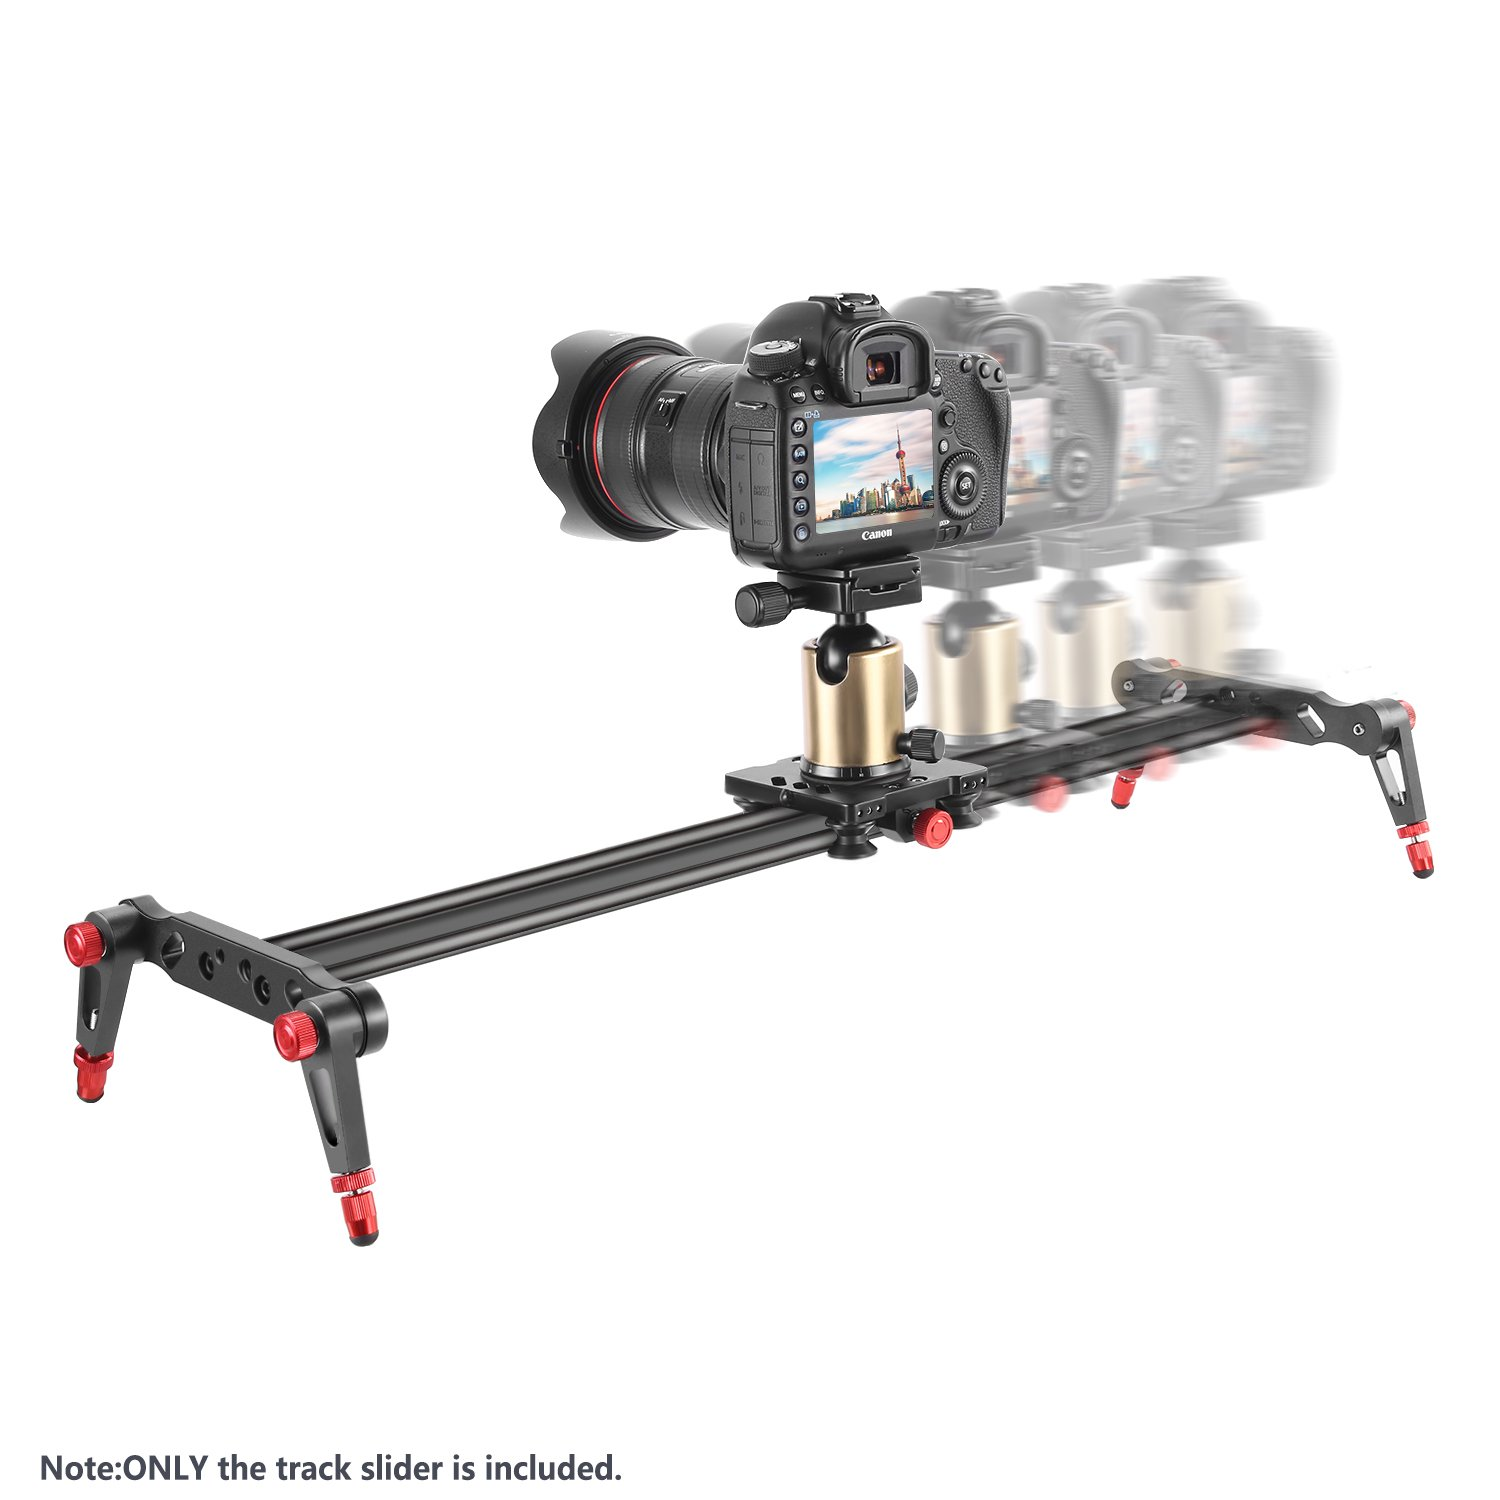 120cm Neewer Aluminum Alloy Camera Track Slider Video Stabilizer Rail with 4 Bearings for DSLR Camera DV Video Camcorder Film Photography Loads up to 17.5 pounds//8 kilograms